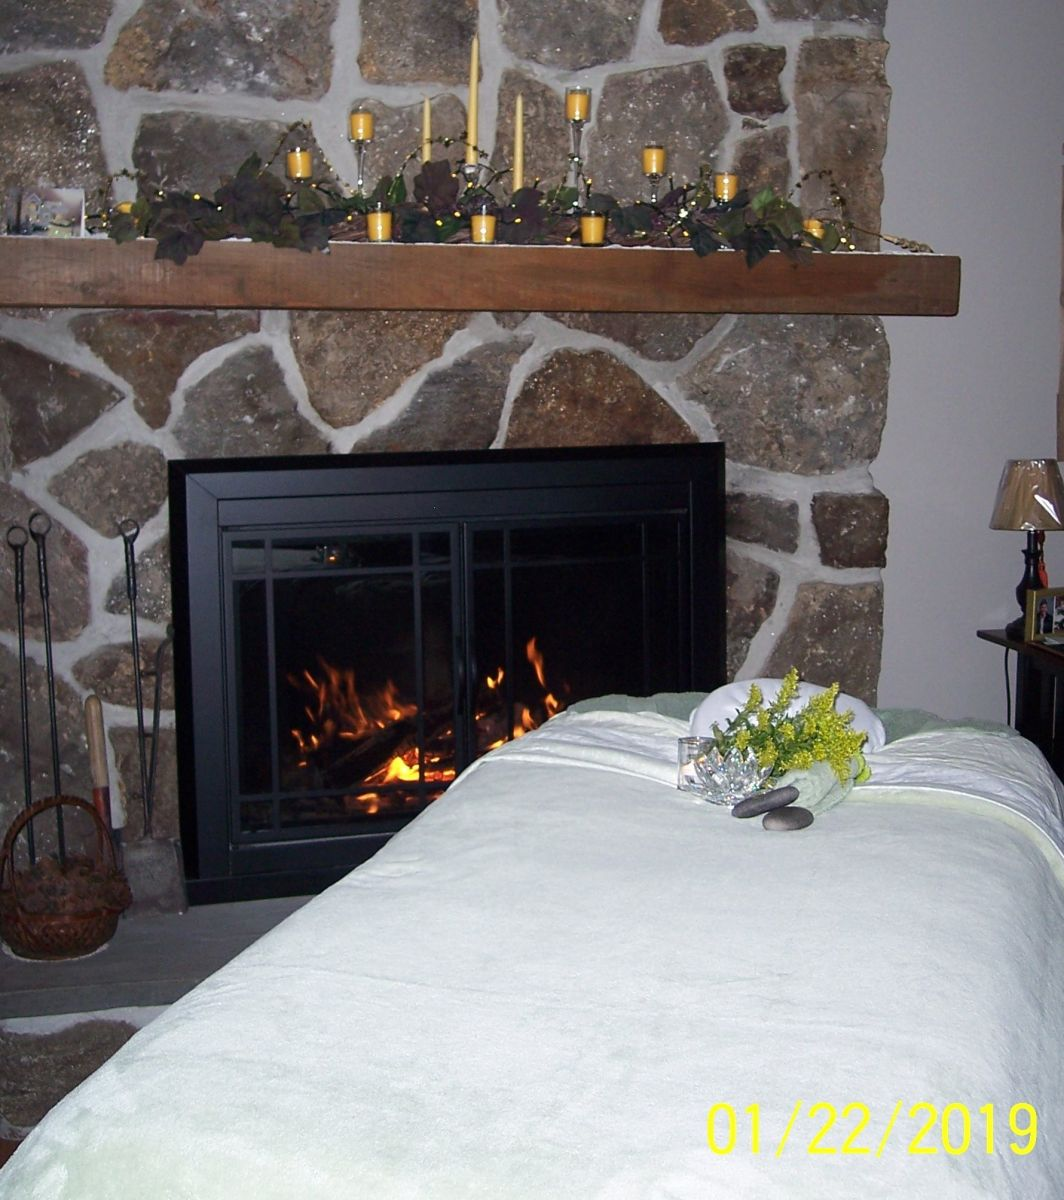 Therapeutic massage therapy for lasting healing and deep relaxation.